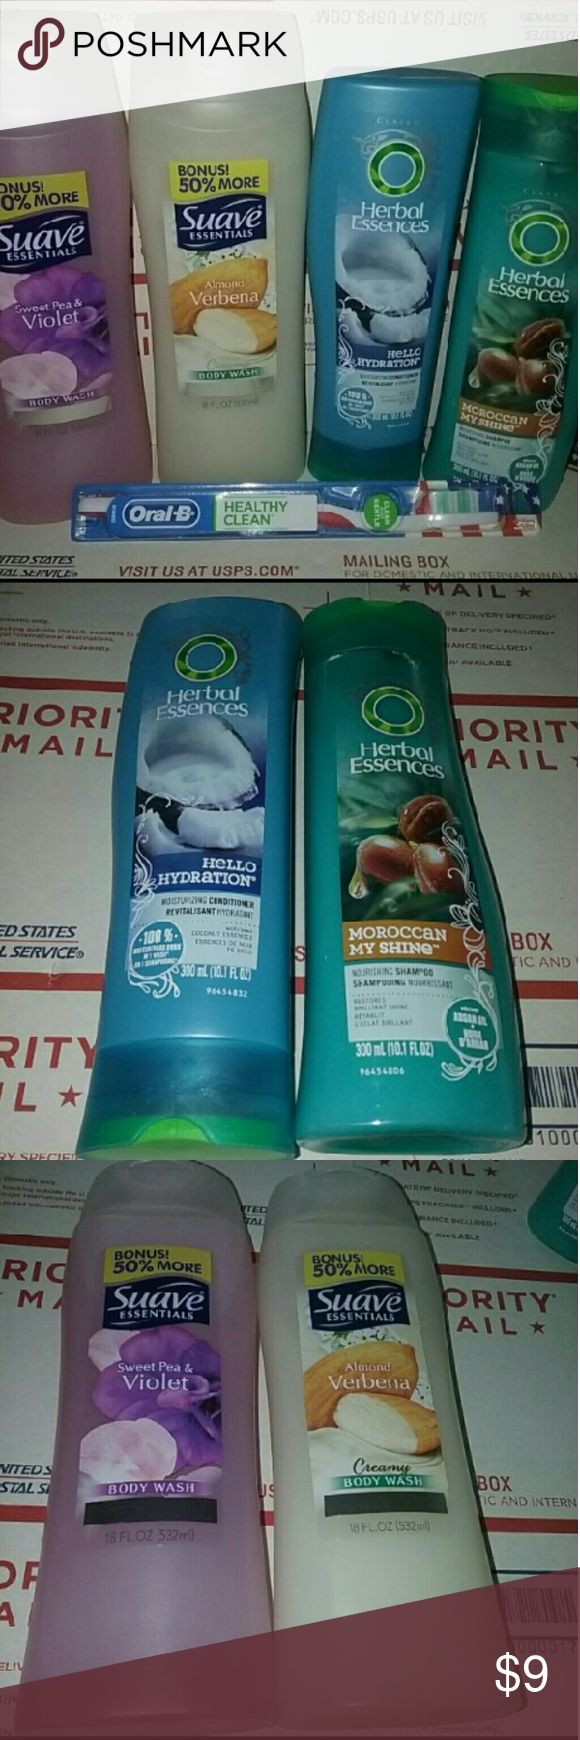 NEW Womens Mix Herbal Essences & Suave Oral B NEW Womens Mix Herbal Essences & Suave Oral B Get Everything Pictured Includes.. Herbal Essences Moraccan My Shine 10oz Shampoo ... Herbal Essences Hello Hydration 10oz Conditioner.. Suave Essentials Almond Verbena Cramy Body Wash 18oz.. Suave Essential Sweet Pea & Violet Body Wash 18oz.. NEW Oral B Medium Healthy Clean Toothbrush...   ?? ~ ALL ITEMS NEW ~ ??  Check Out My Page To Save ** Accessories Hair Accessories